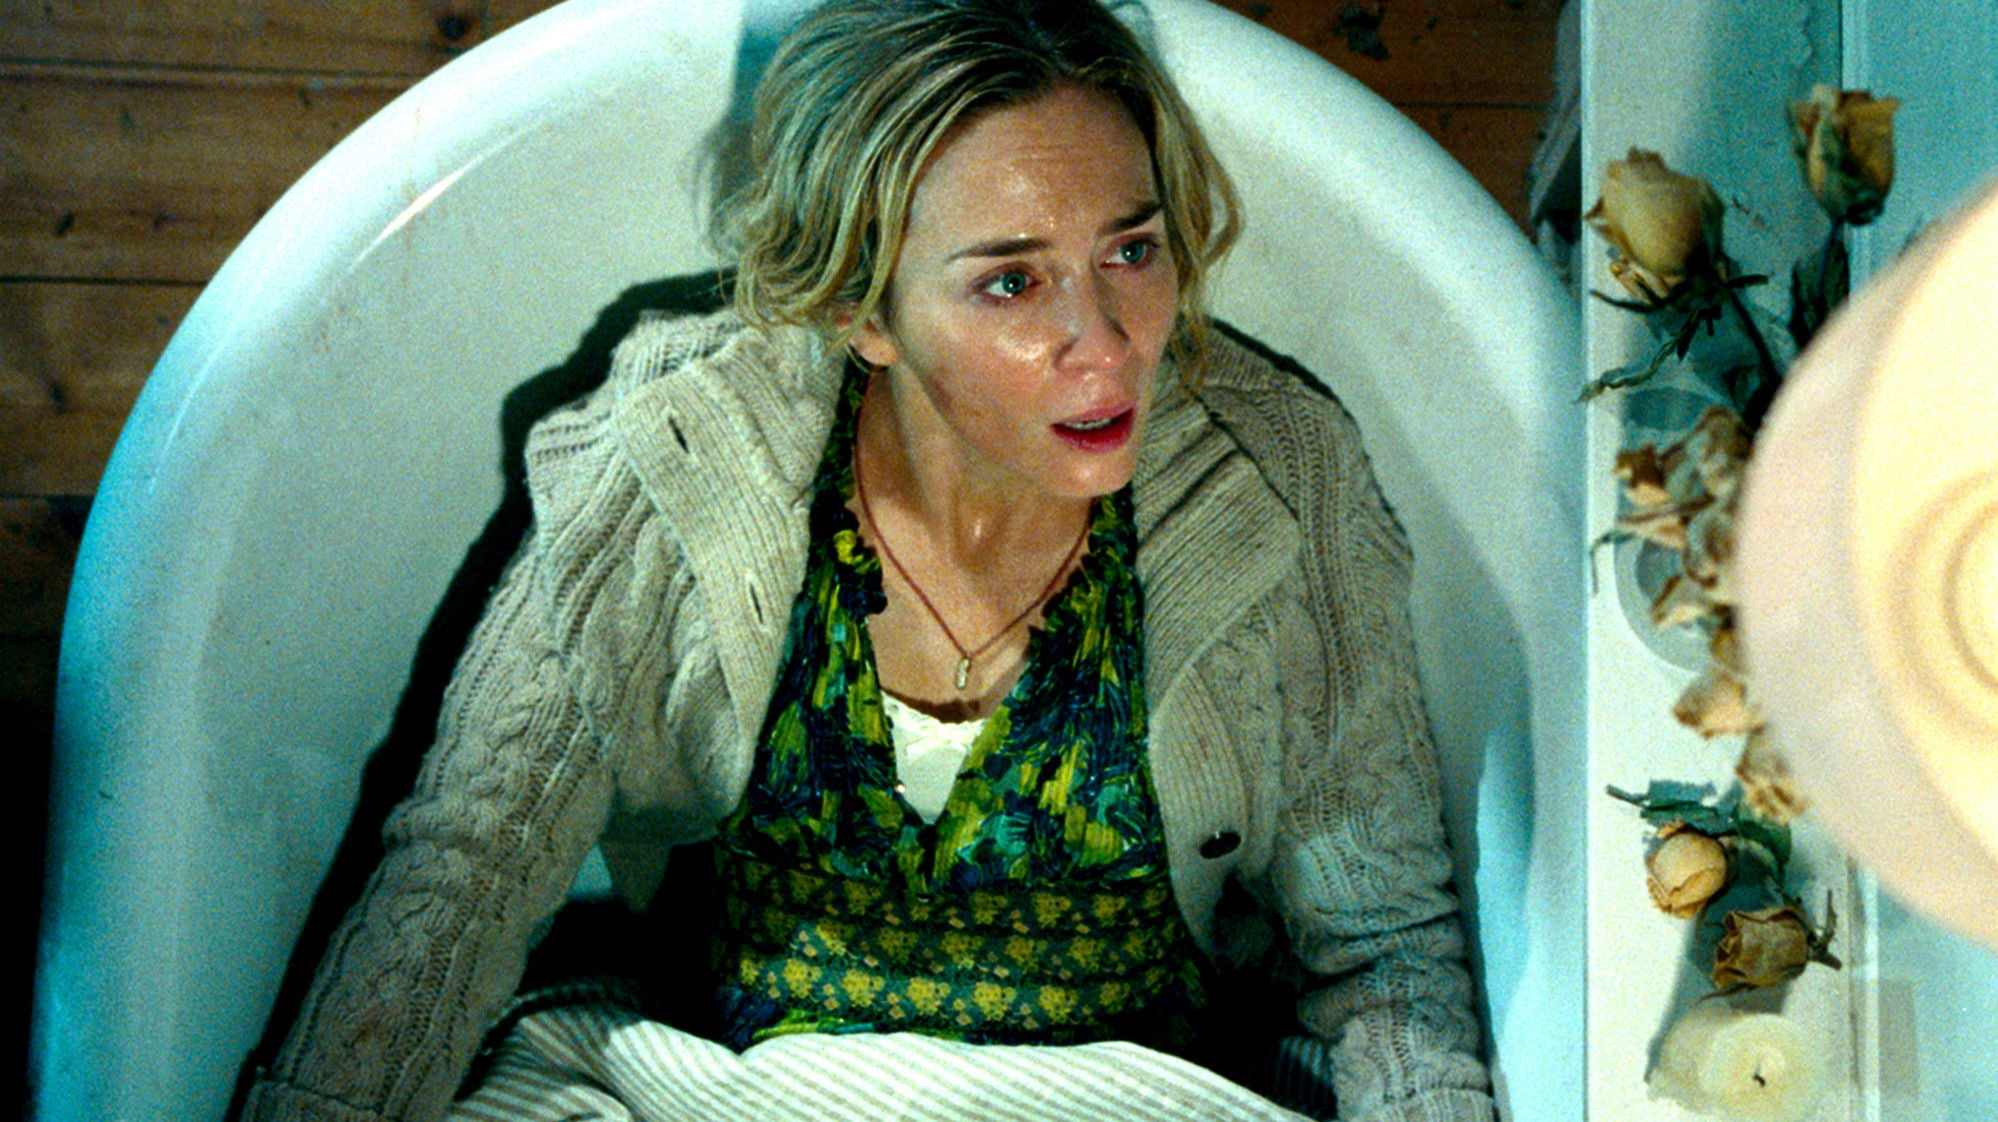 You Can Finally See The Gruesome Monsters From A Quiet Place in All Their Glory